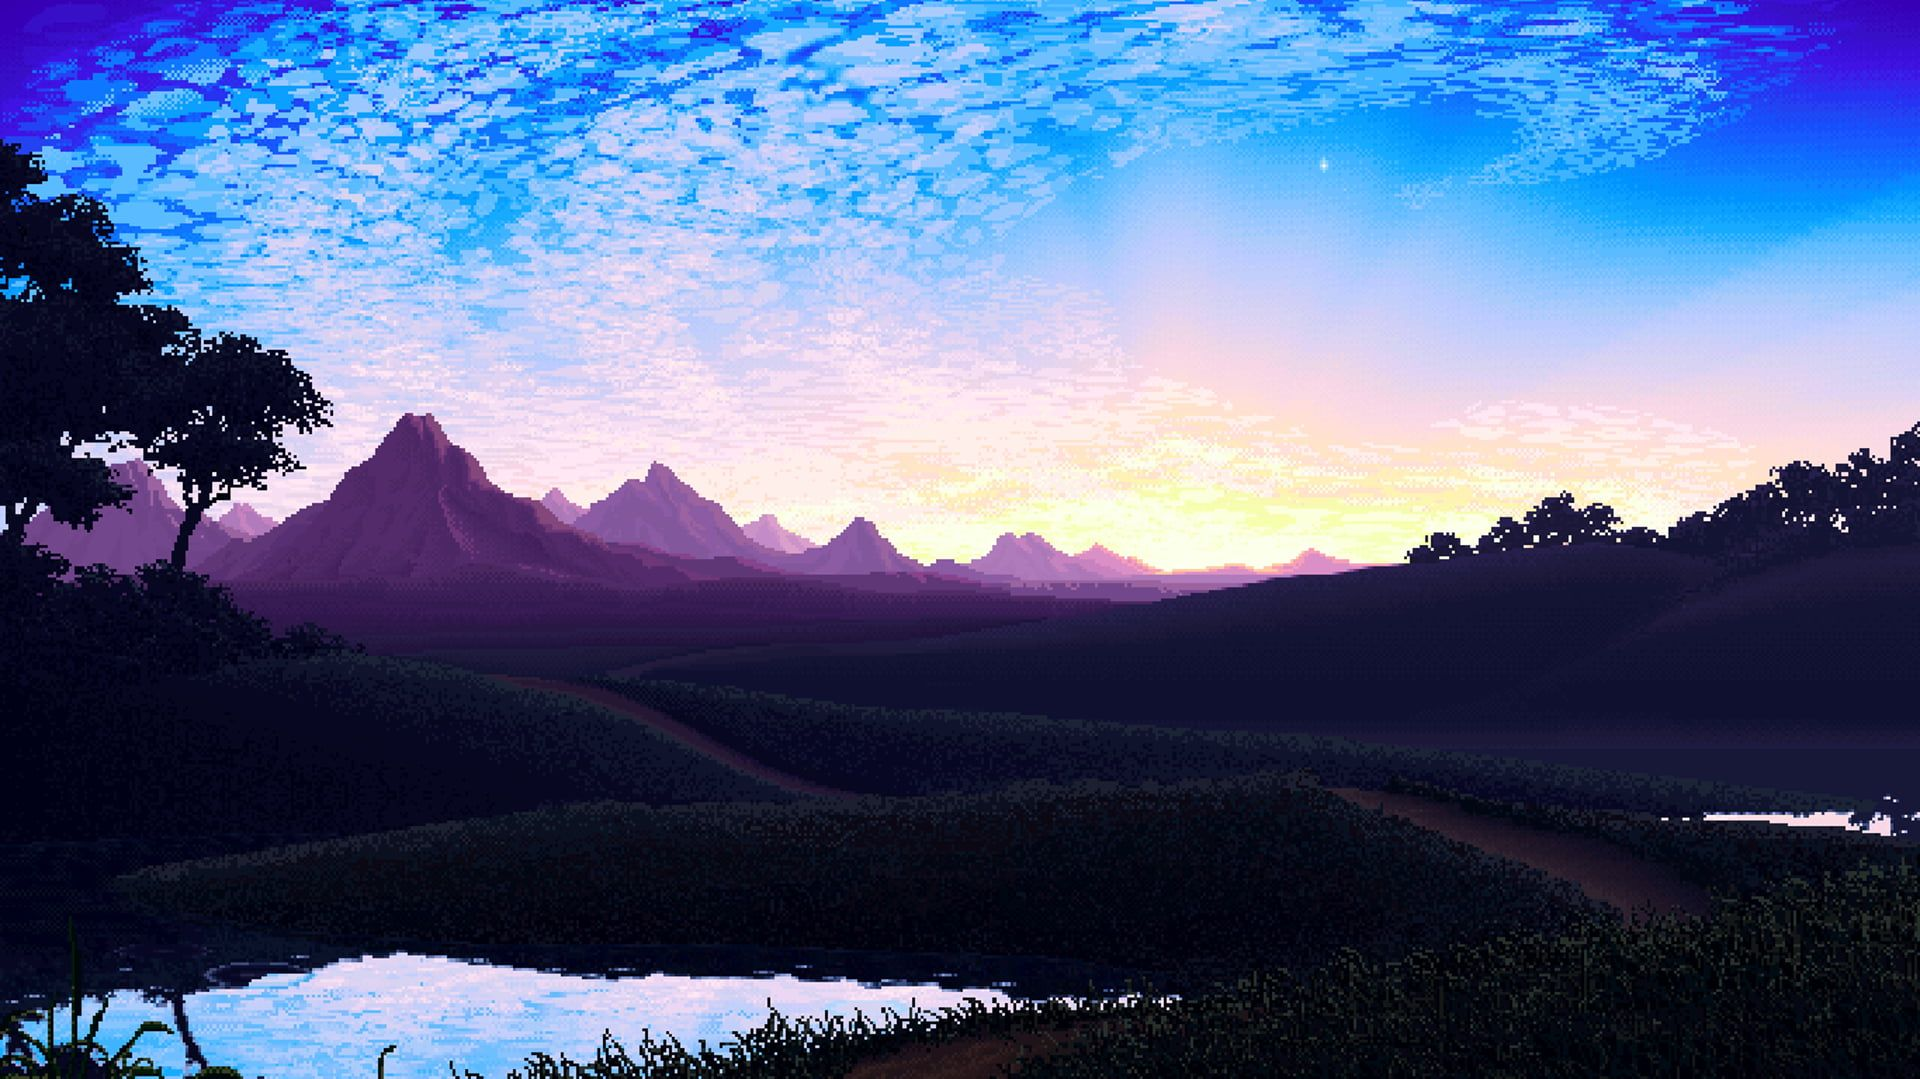 Animated Illustration Of Mountains Nature Pixel Art Pixels Mountains Calm Sky Artwork Landscape Digital Art Sunrise 108 Pixel Art Landscape Pixel City Animated nature wallpaper hd